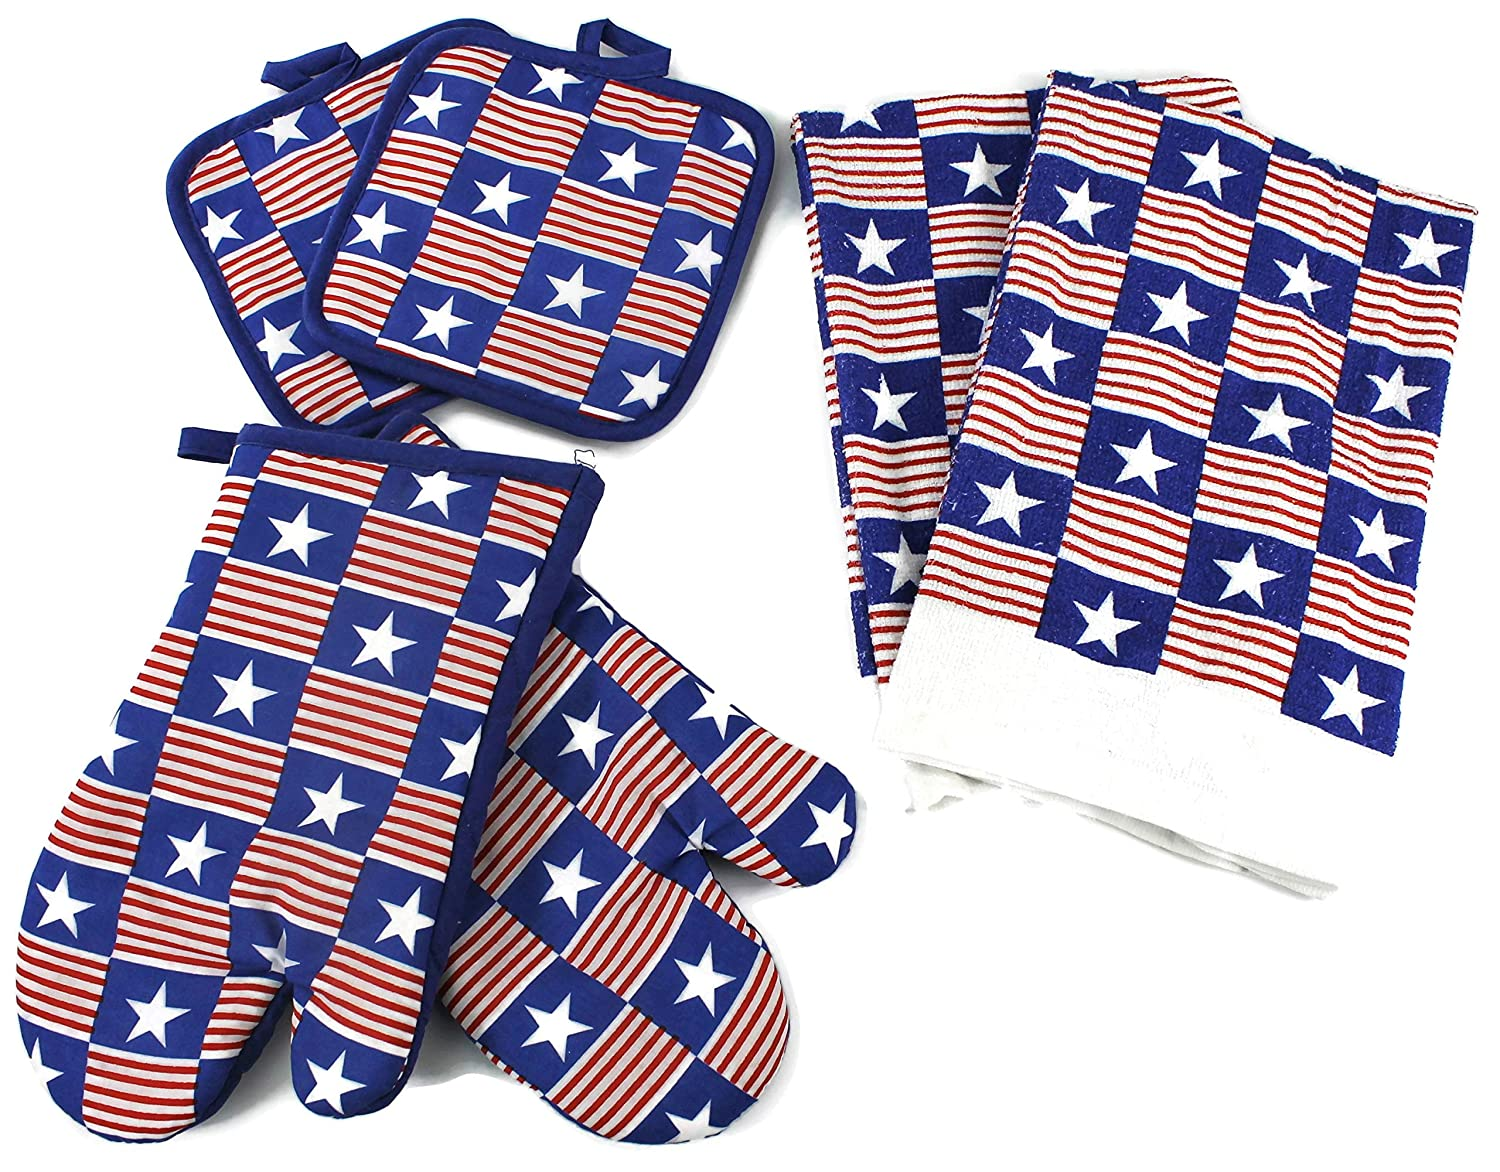 High End Home Independence Day Collection 6 Piece Kitchen Decor Linen Set, Includes 1 Year Warranty, 2 Tea Towels, 2 Oven Mitts and 2 Pot Holders, Stars and Stripes Red White Blue